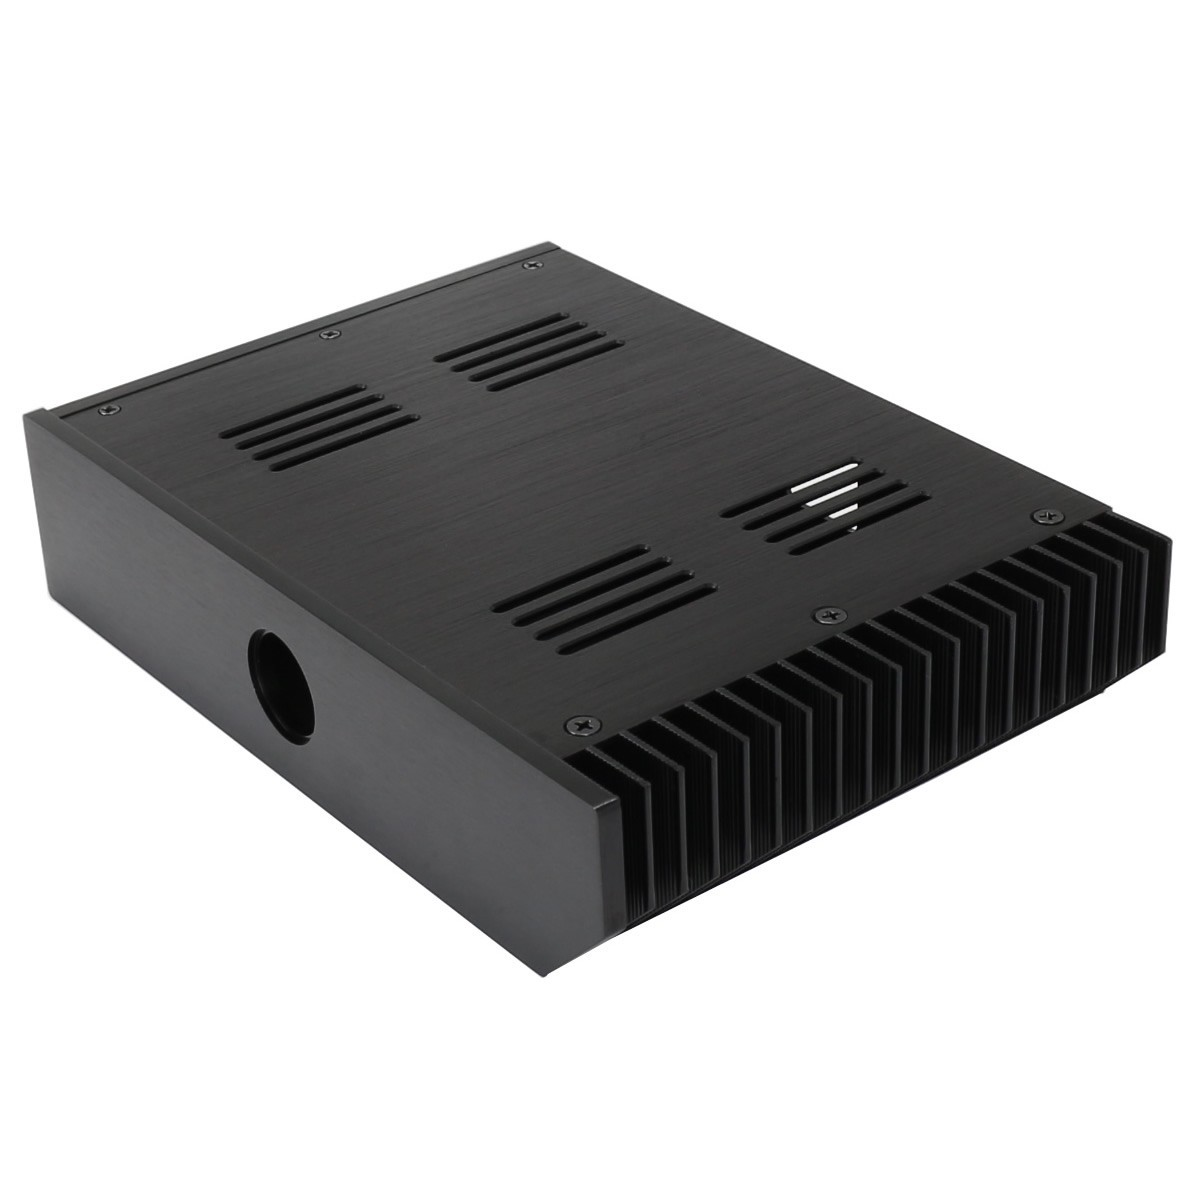 Aluminium case black anodized for diy power supply audiophonics aluminium case black anodized for diy power supply solutioingenieria Choice Image